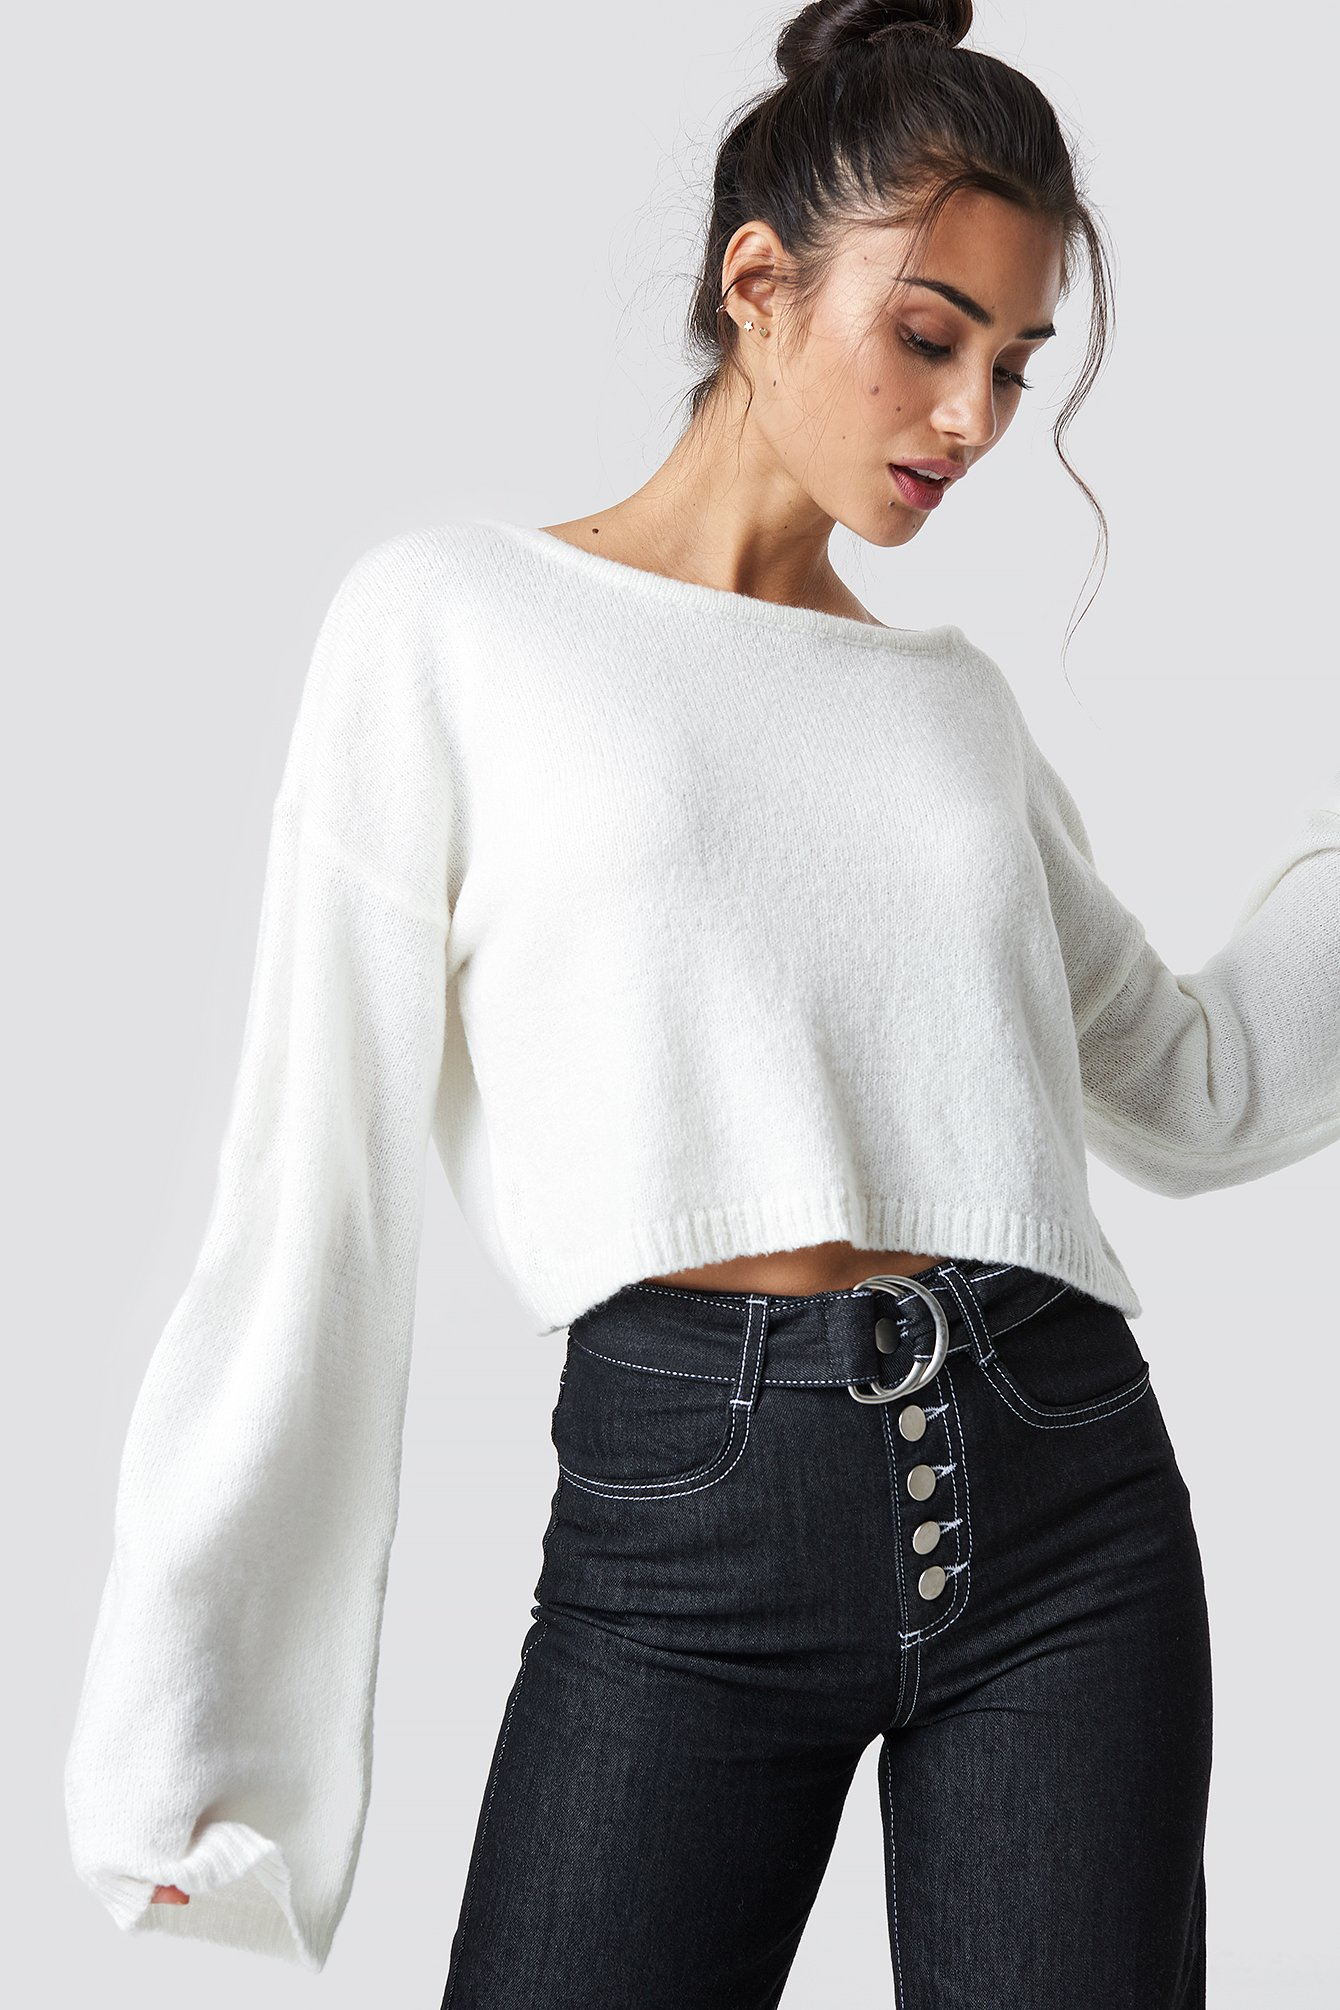 CHLOEXNAKD Knitted Boatneck Sweater - White